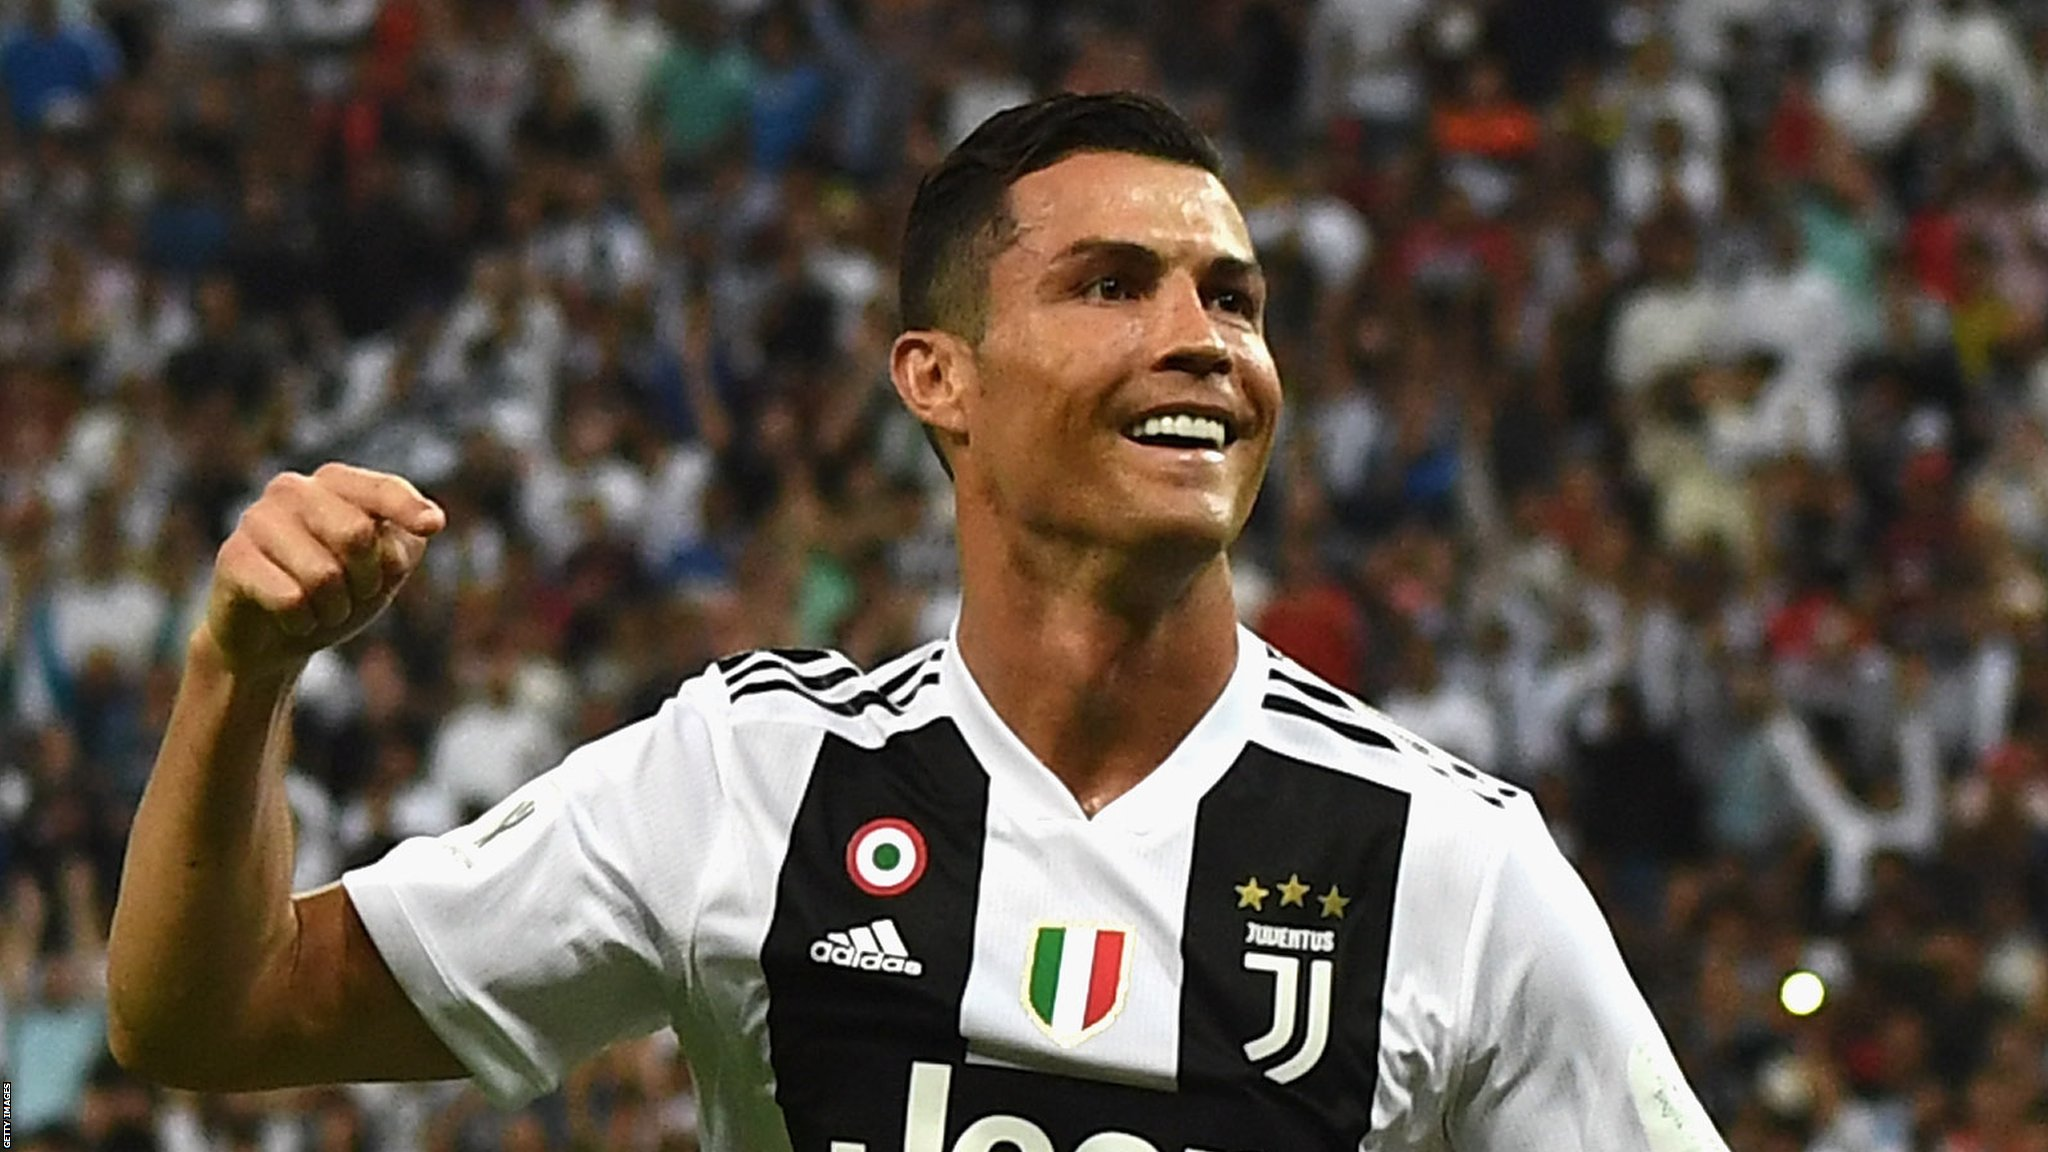 Juventus 1-0 AC Milan: Cristiano Ronaldo header wins Supercoppa for Juve